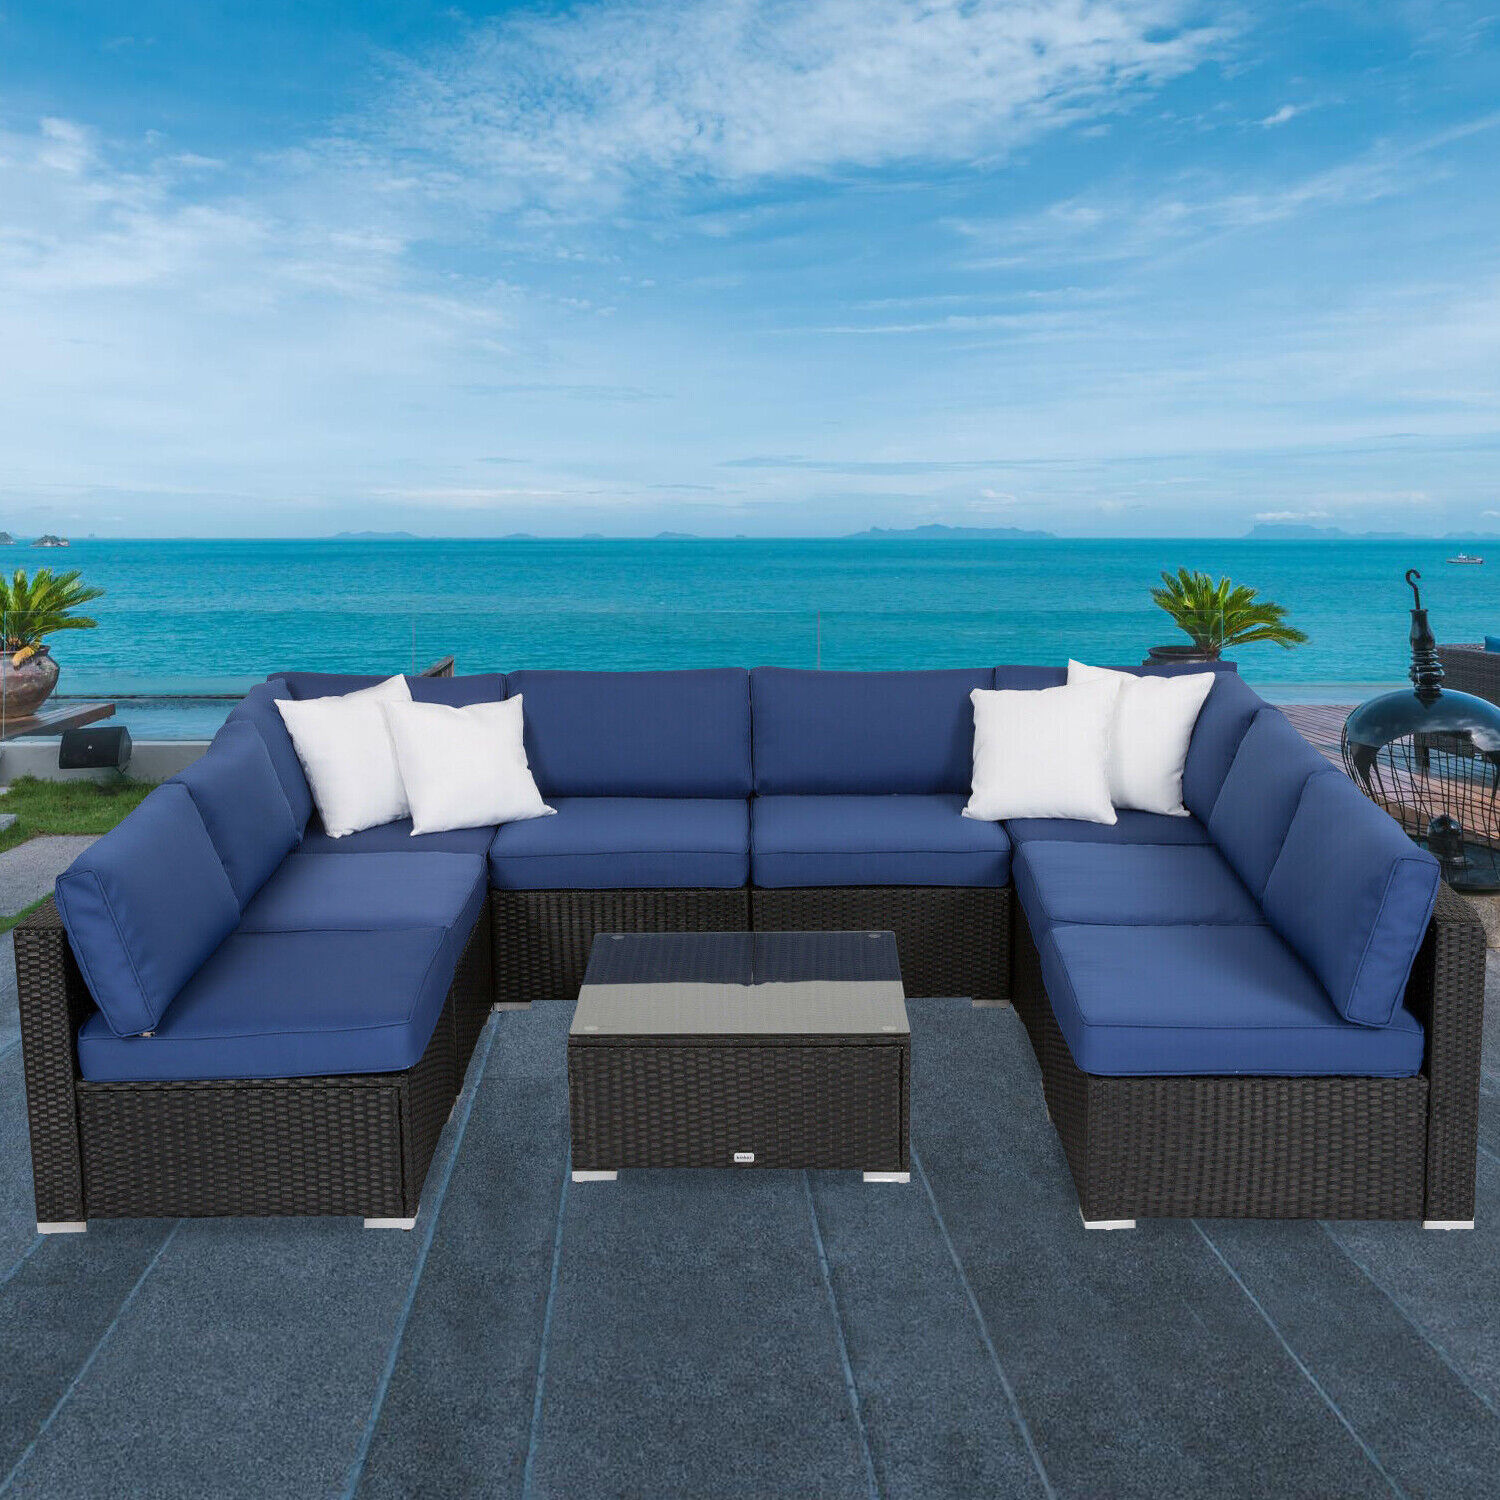 Garden Furniture - 9pcs Outdoor Patio Sofa Set Rattan Garden Furniture Sectional Garden Yard Deck